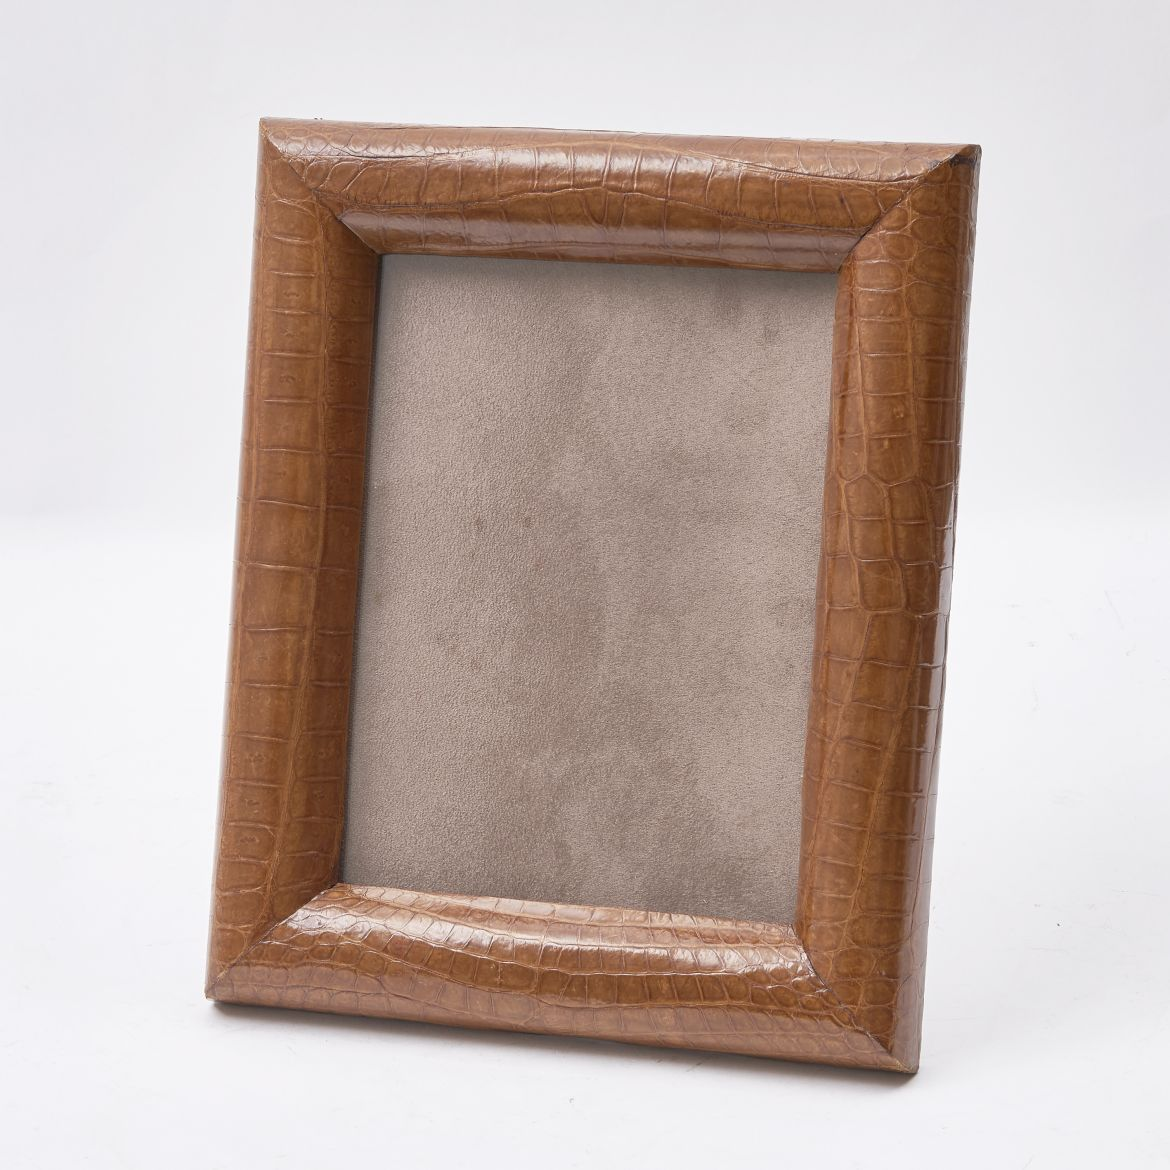 English Crocodile Skin photo Frame